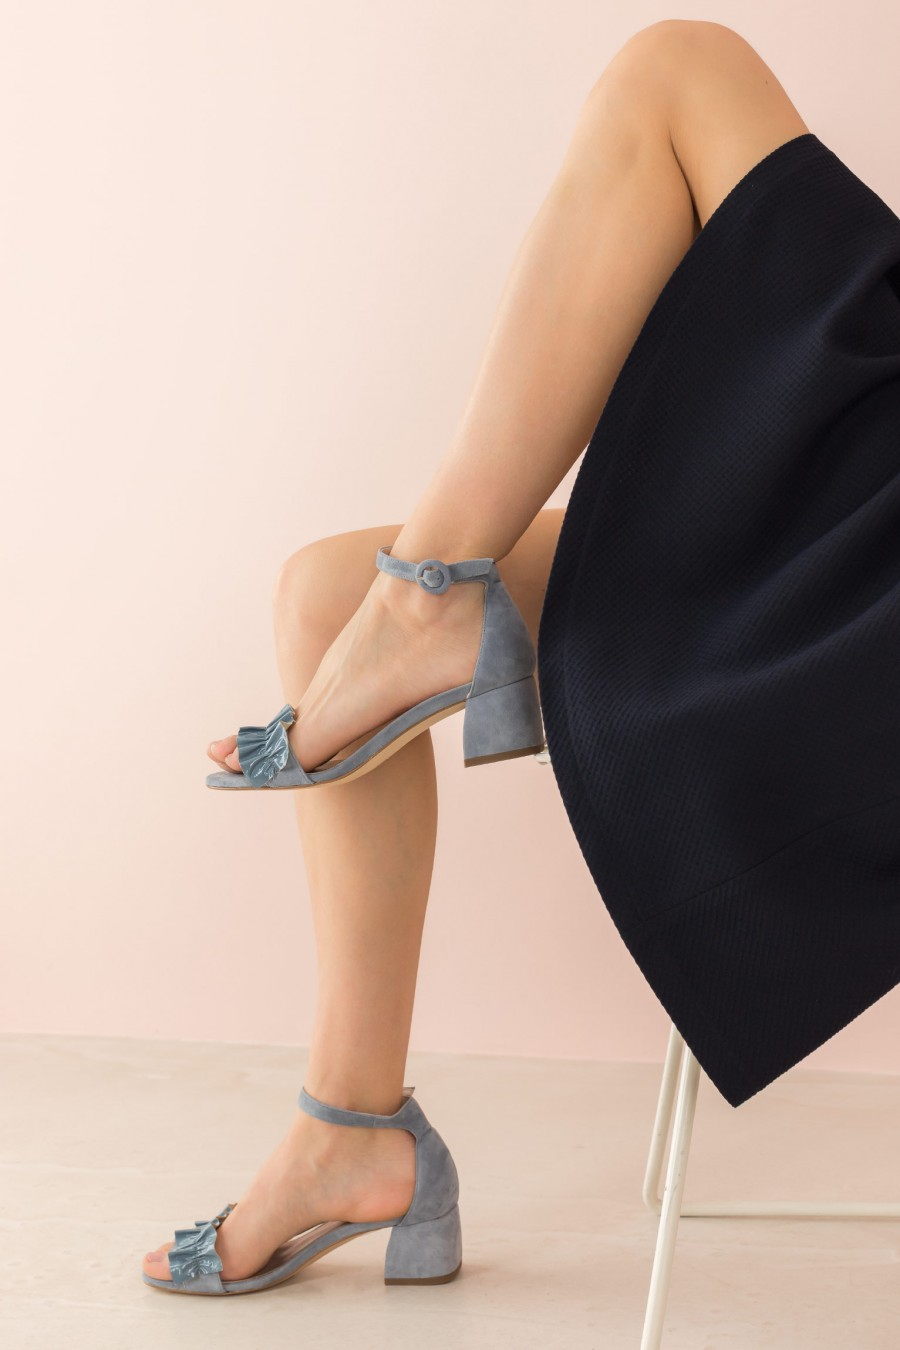 light blue sandal with ruffle on the strap